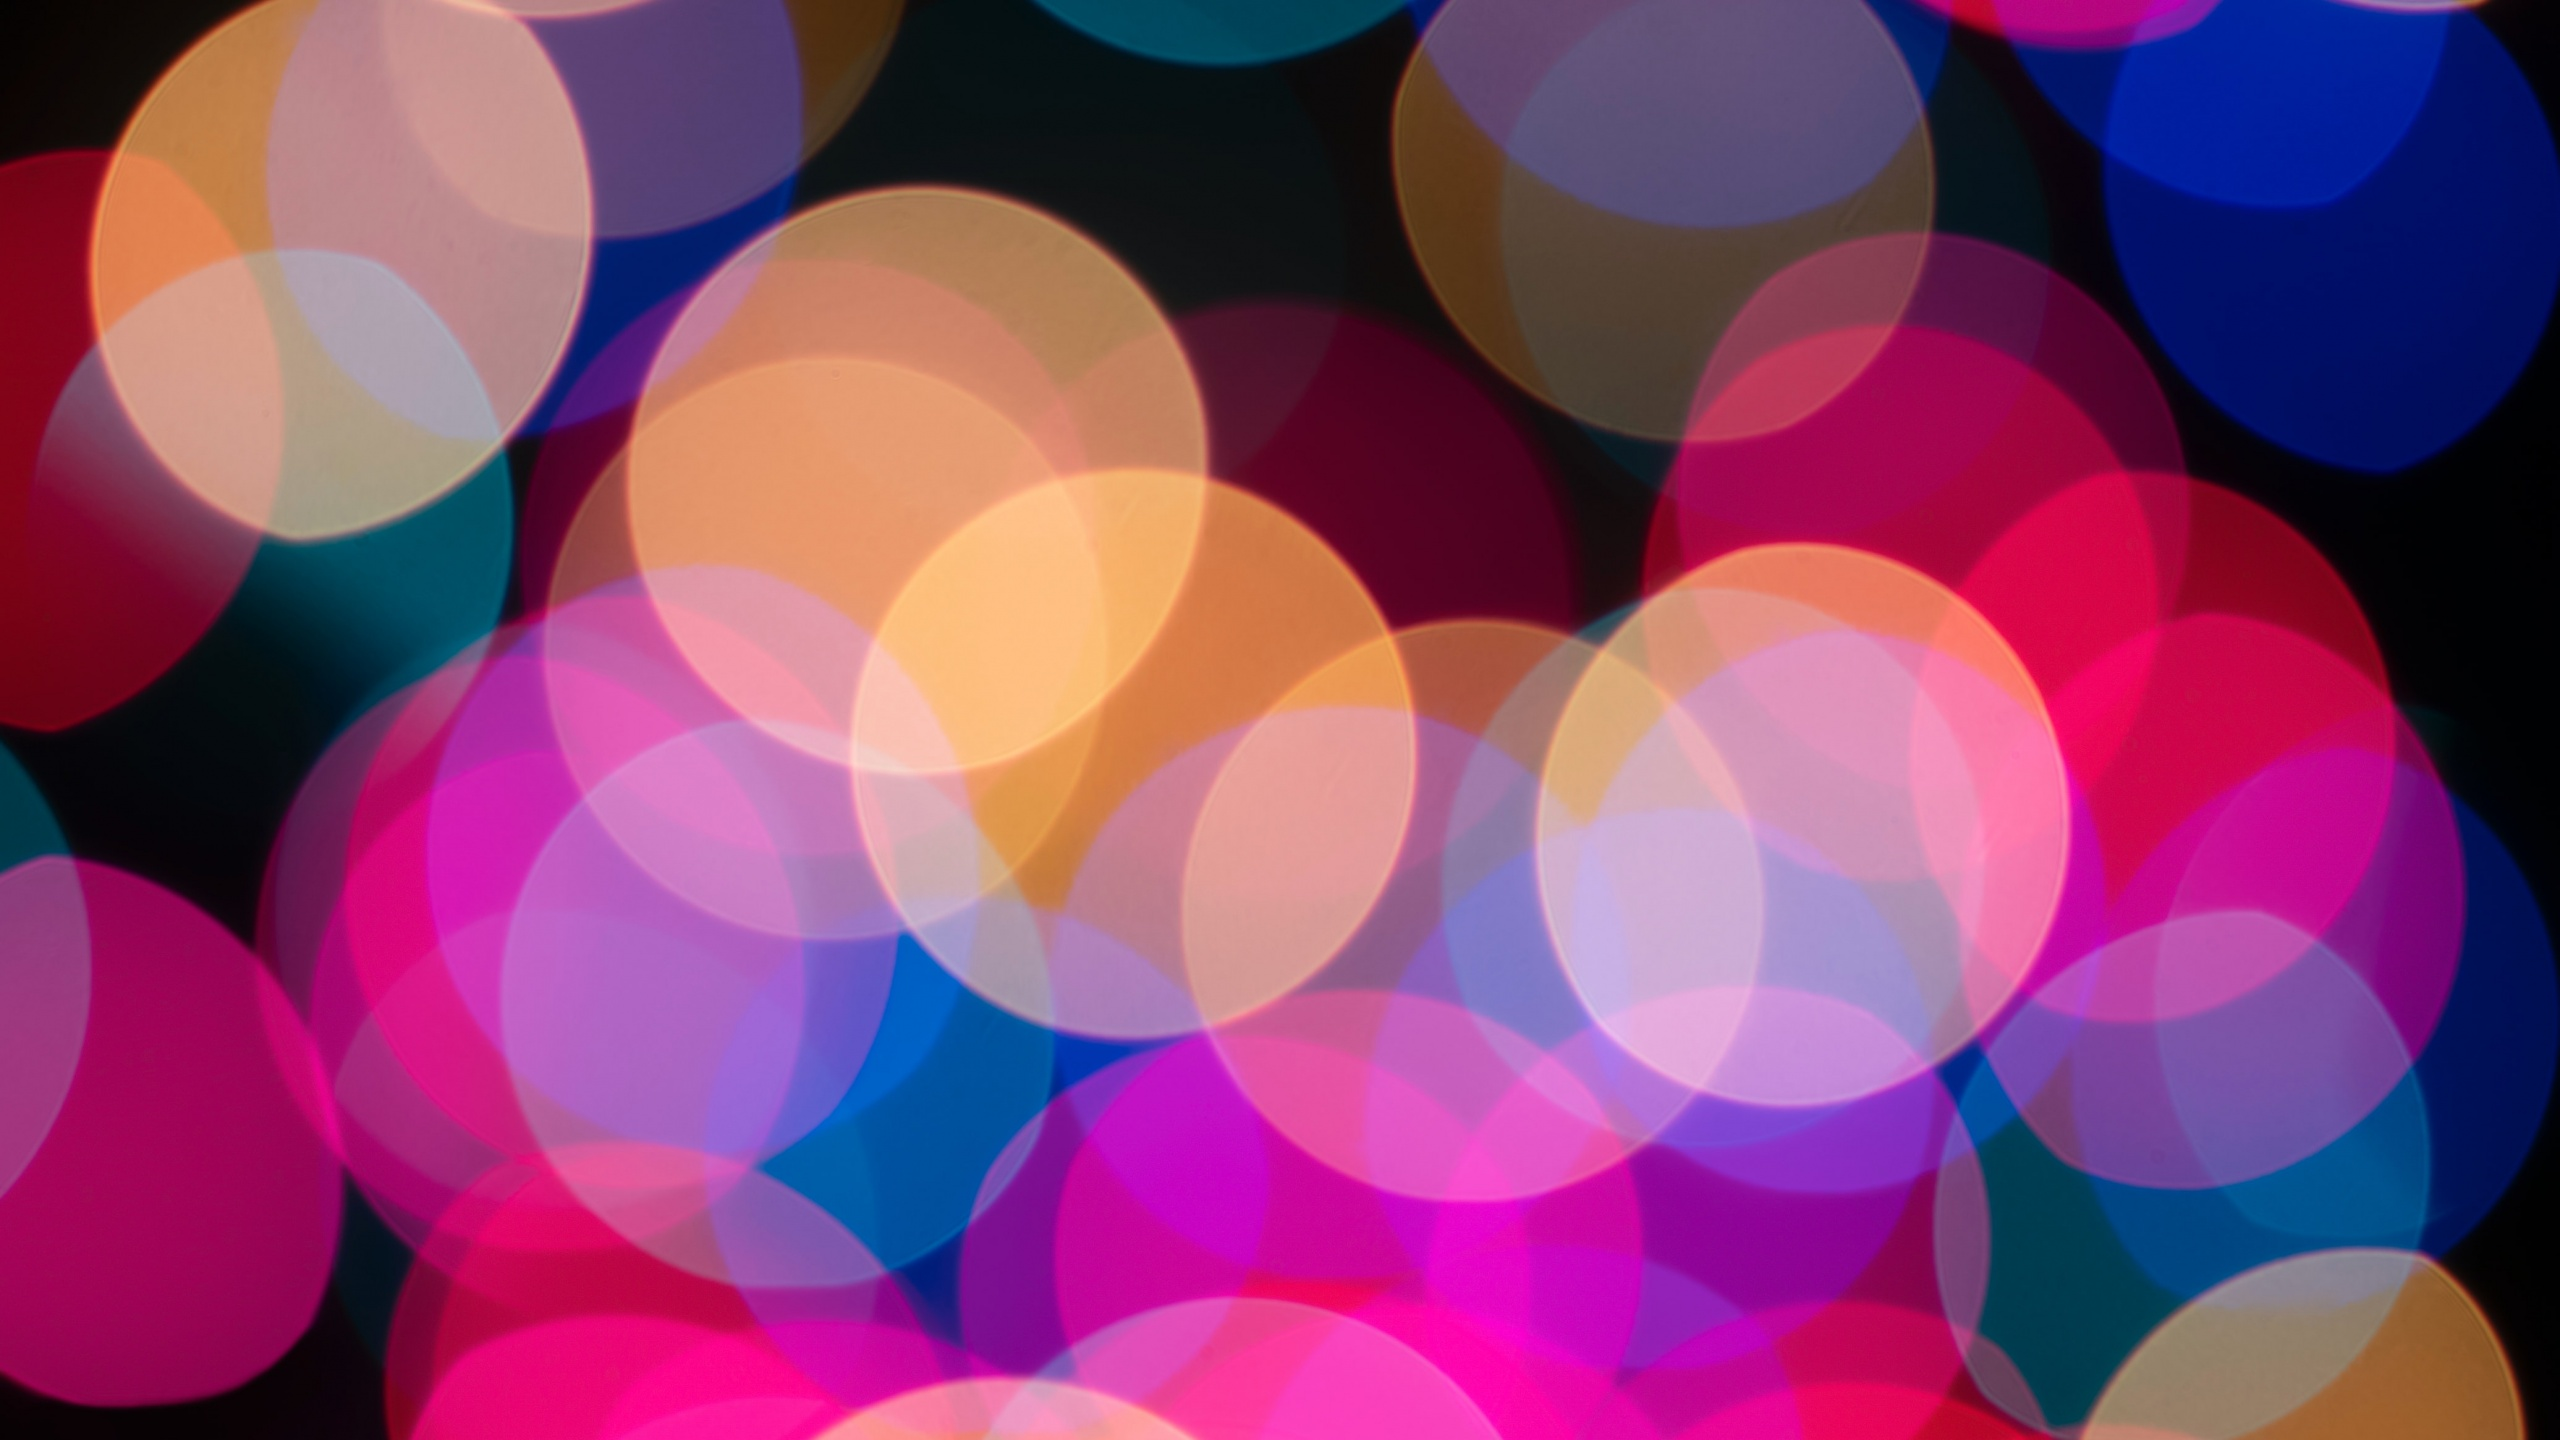 Lights Bokeh 4k Wallpaper Glowing Lights Vibrant Blurred Circles Texture Backdrop Pattern Photography 3415